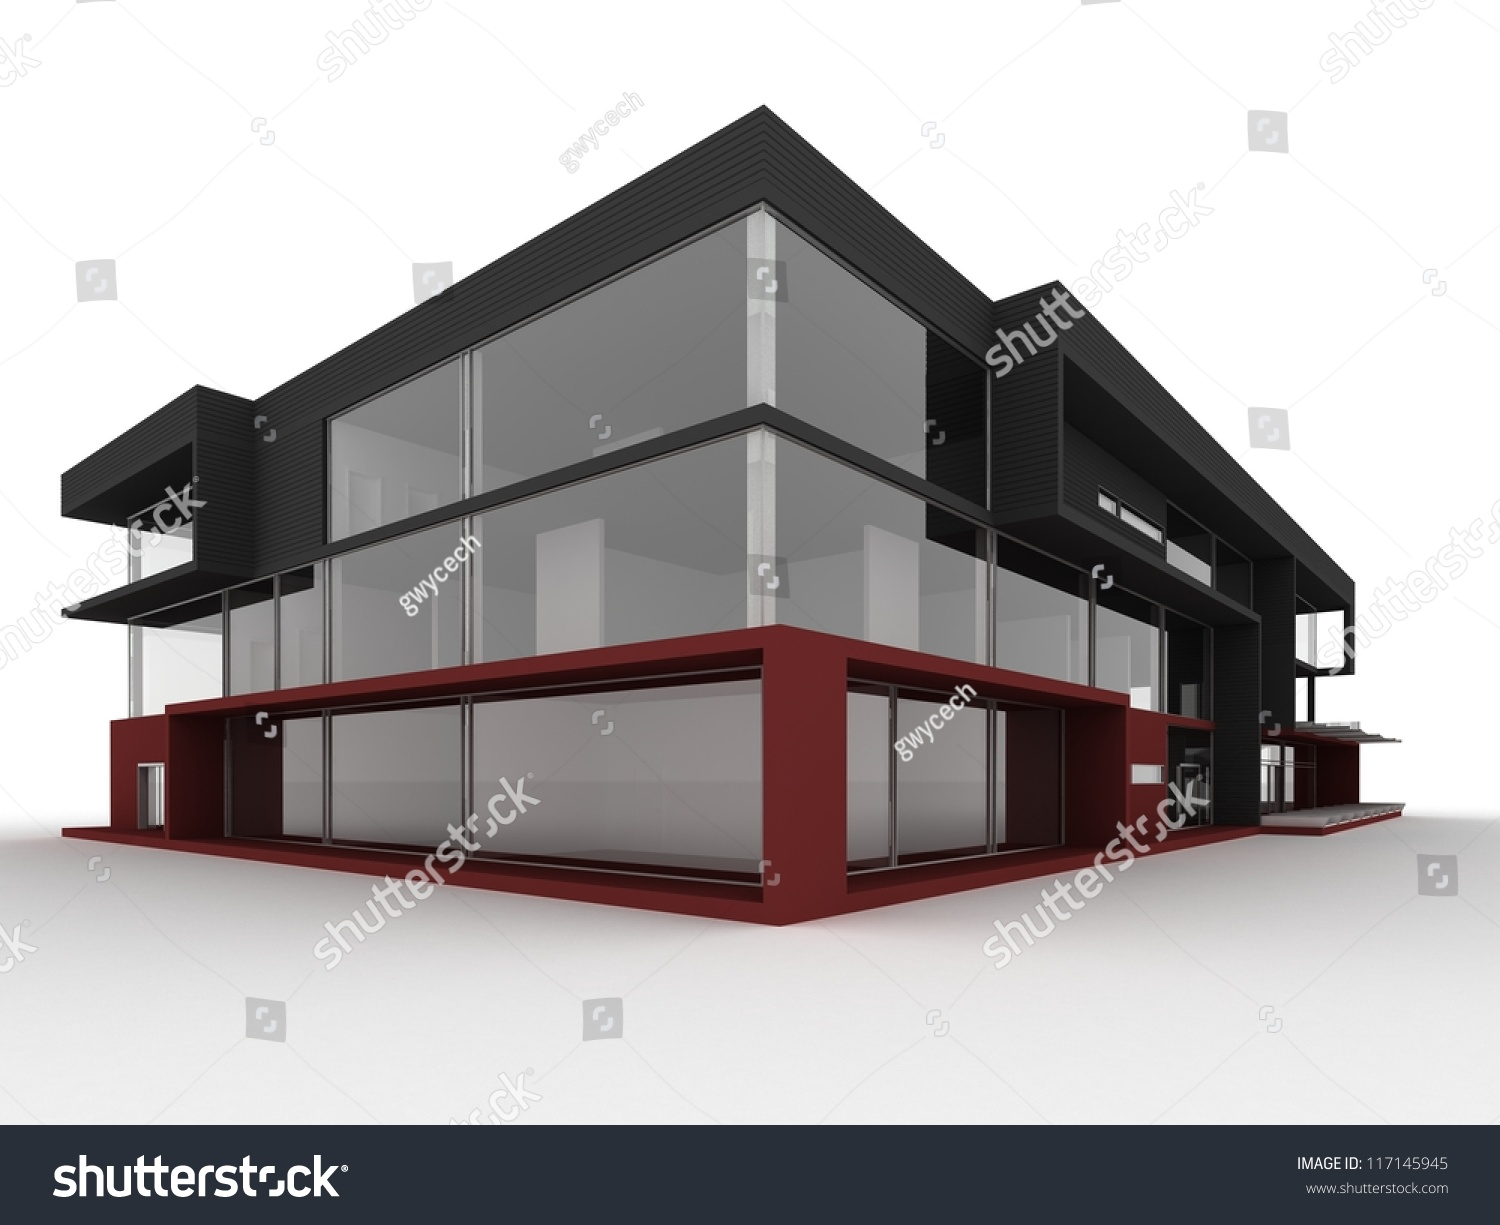 Small office design modern building pictures to pin on for Modern small office building design